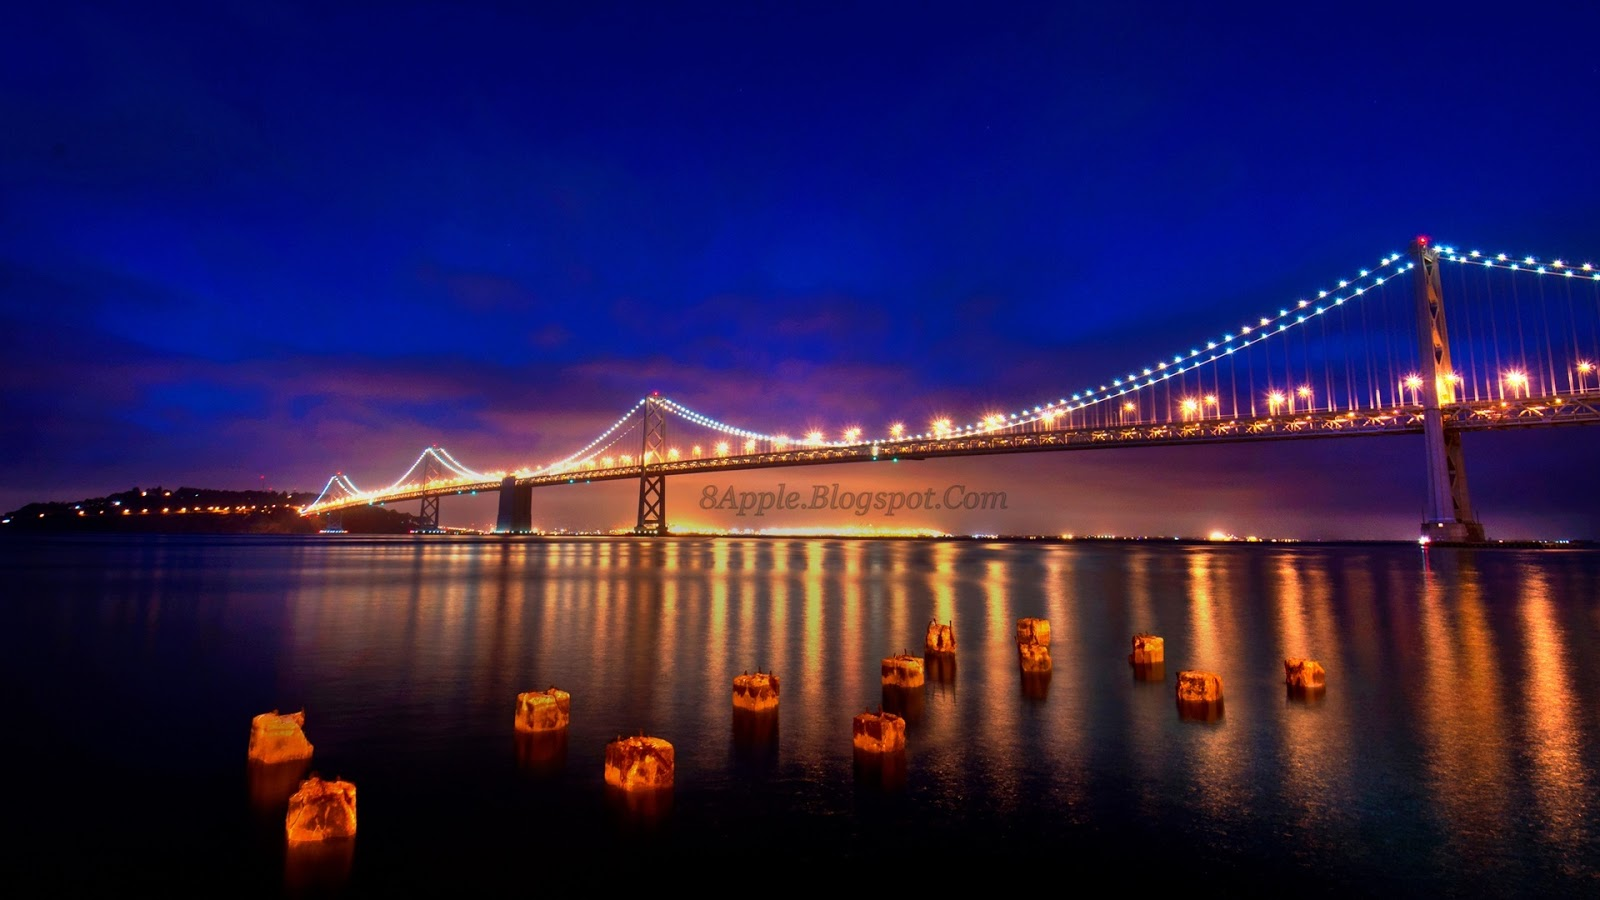 SAN FRANCISCO NIGHTS 1920x1080 HD Wallpaper HD Wallpaper 1600x900